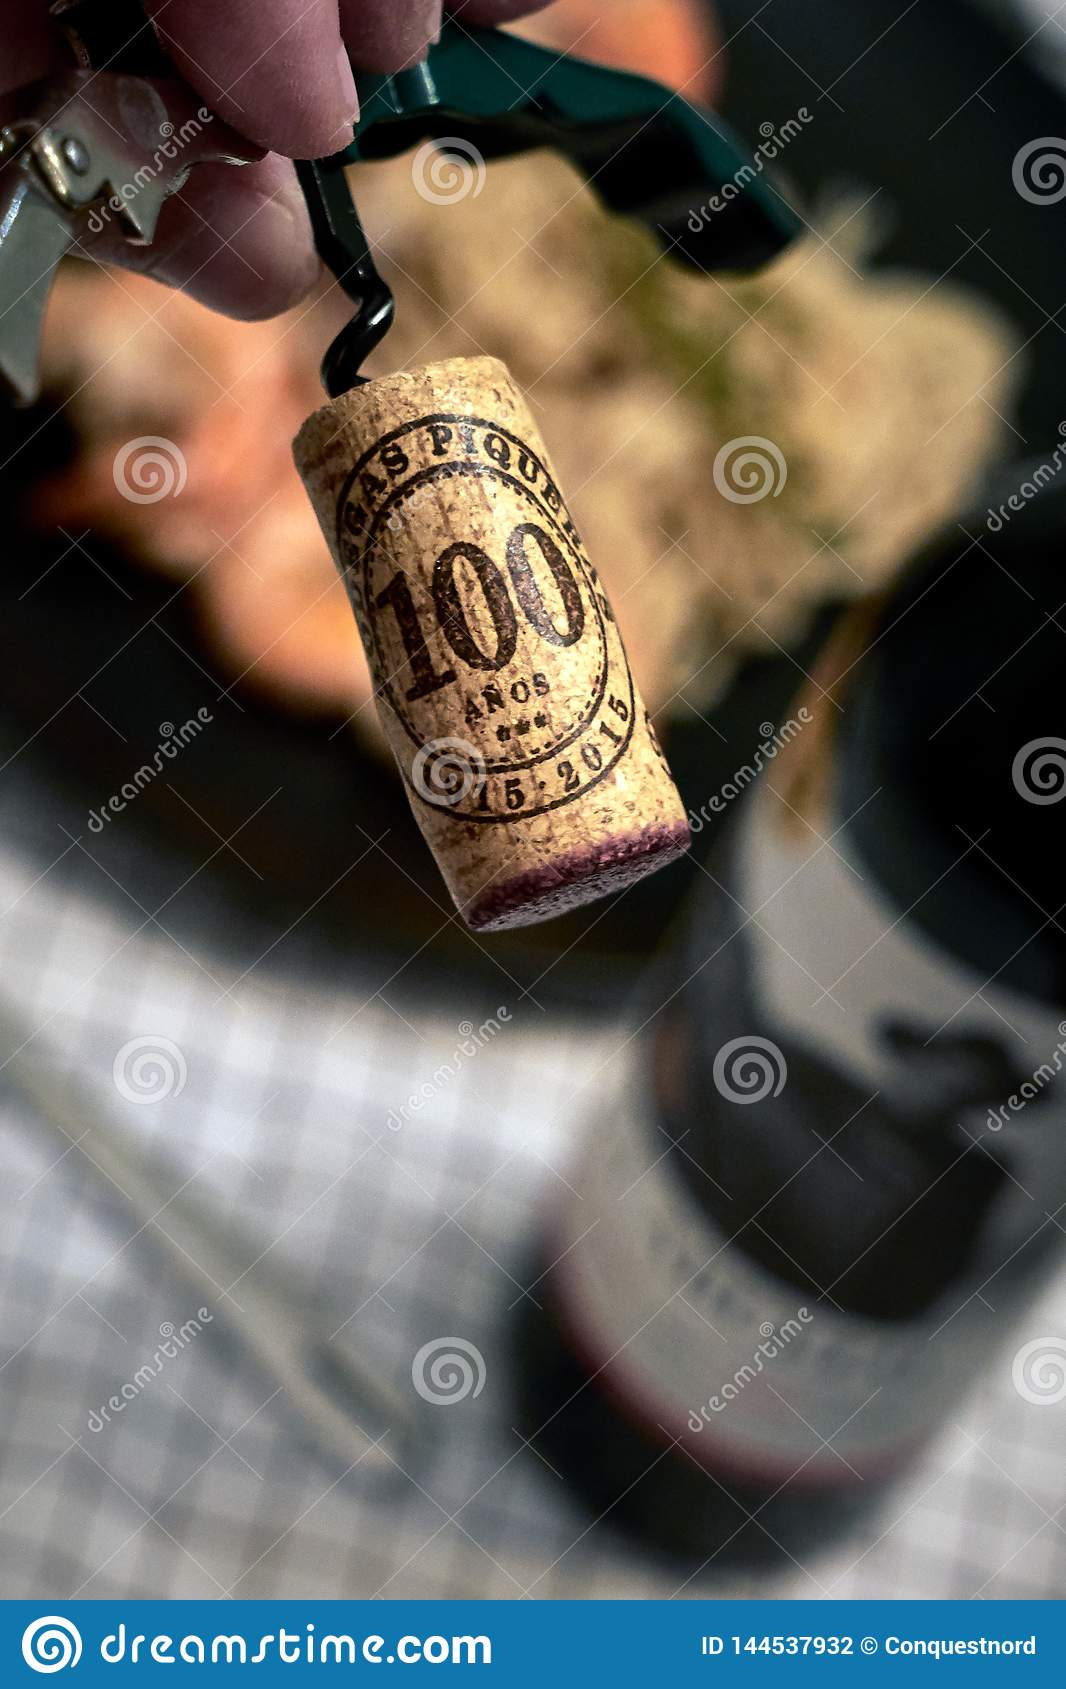 Cork screwed from the bottle of red wine